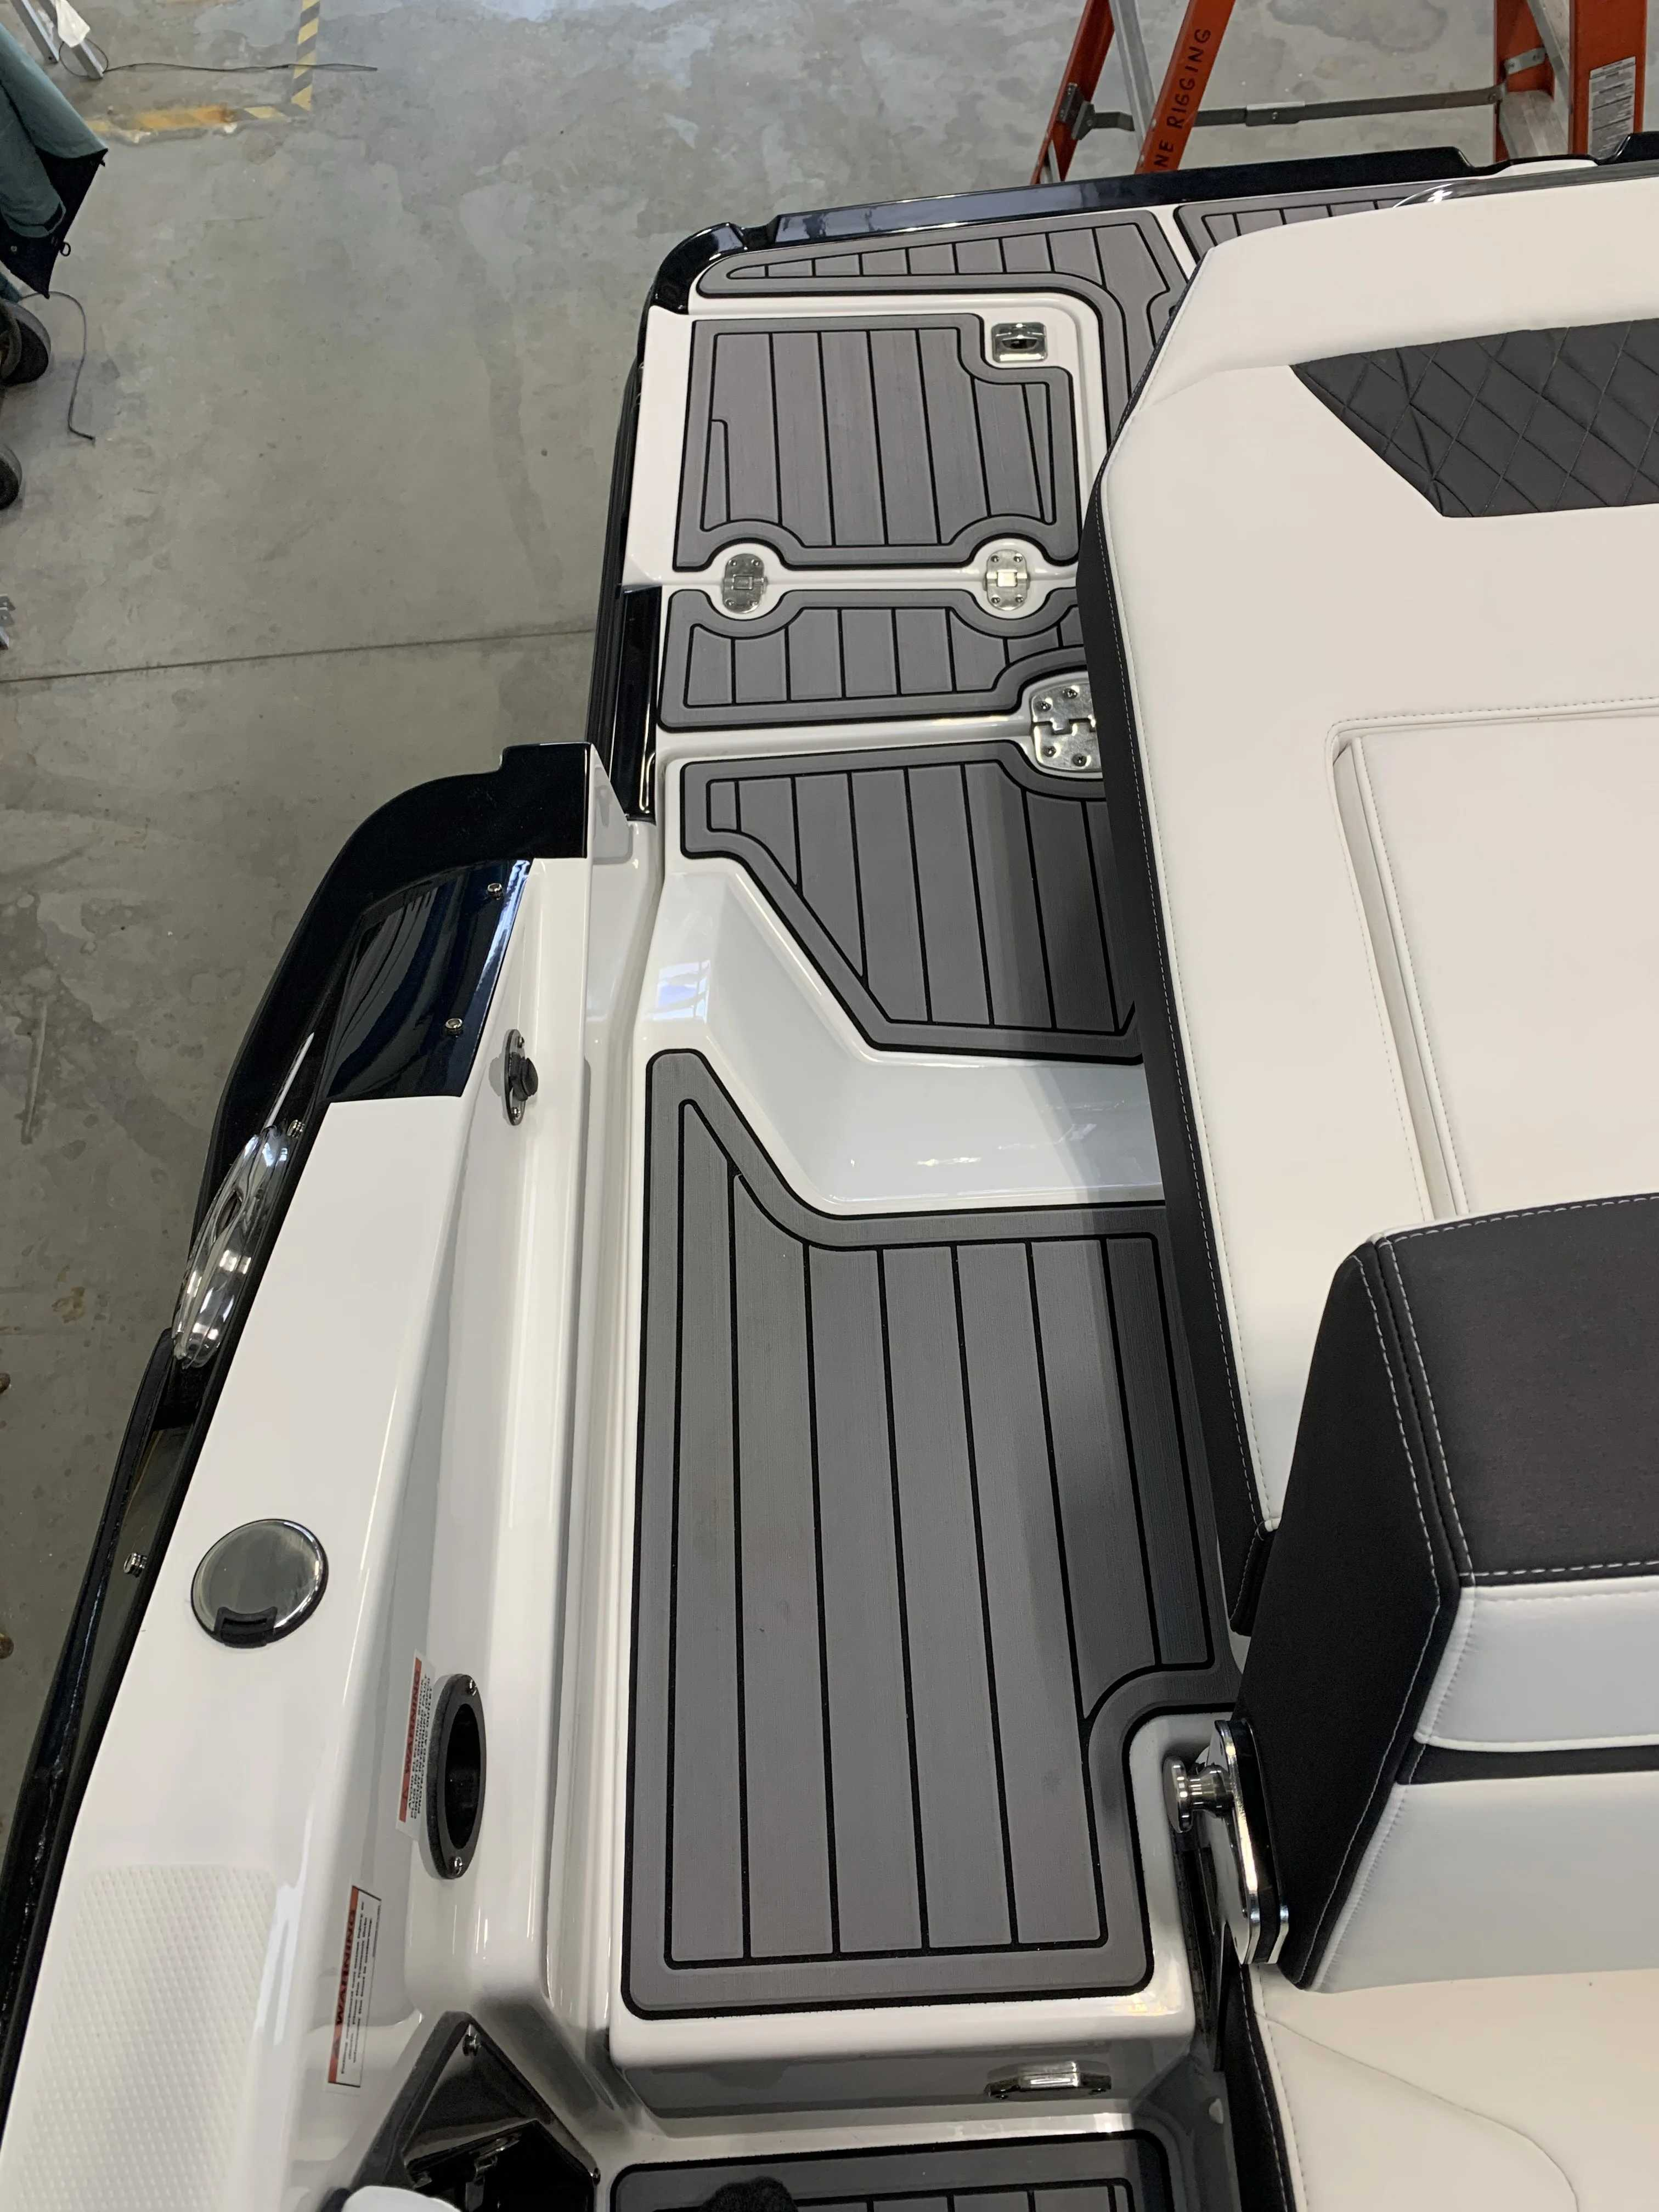 2022 Monterey boat for sale, model of the boat is 278ss & Image # 16 of 18